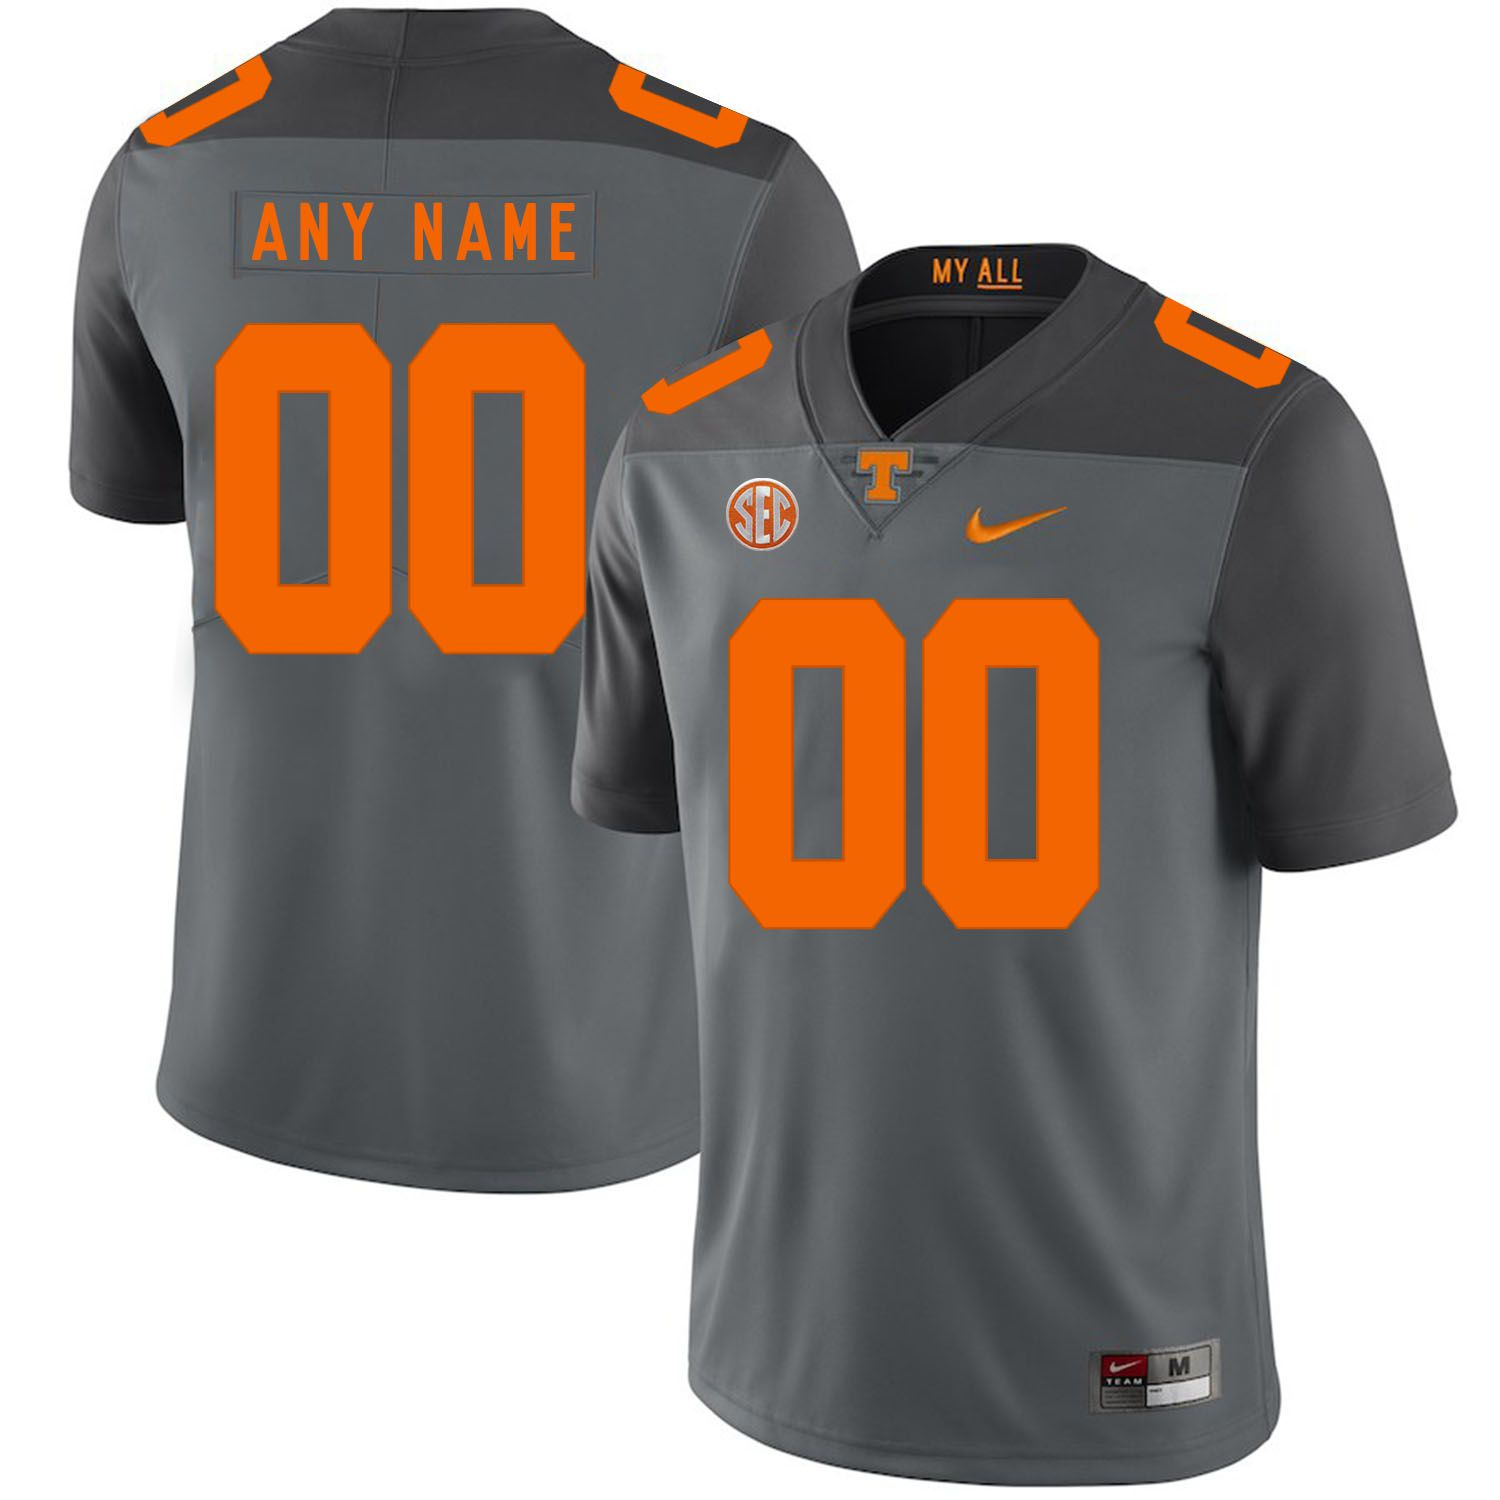 Men Tennessee Volunteers 00 Any name Grey Customized NCAA Jerseys